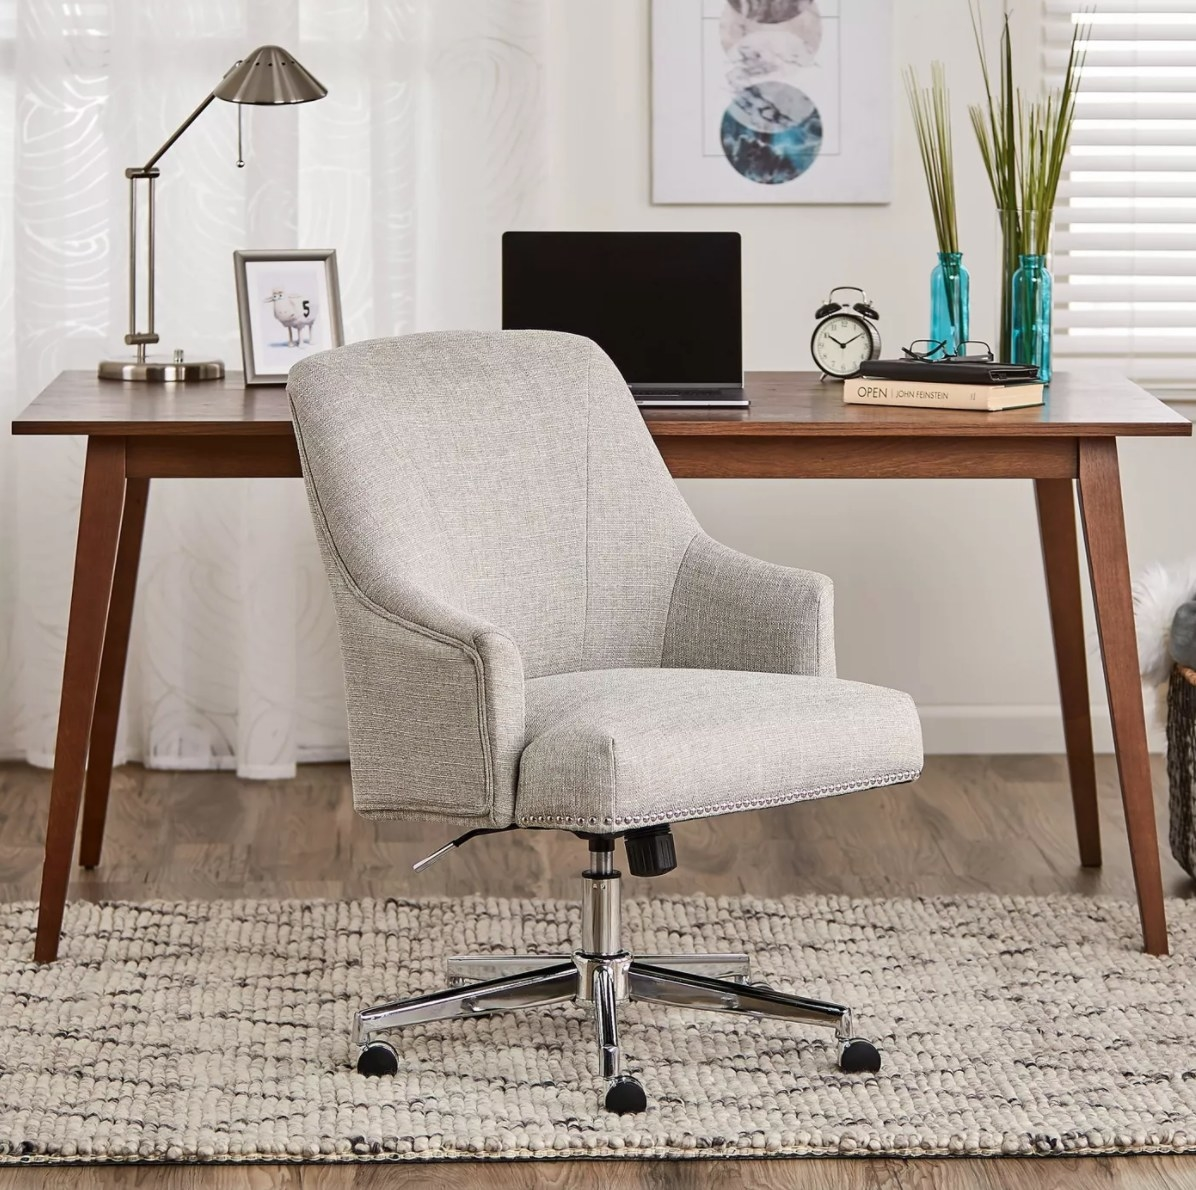 The home office chair in gray